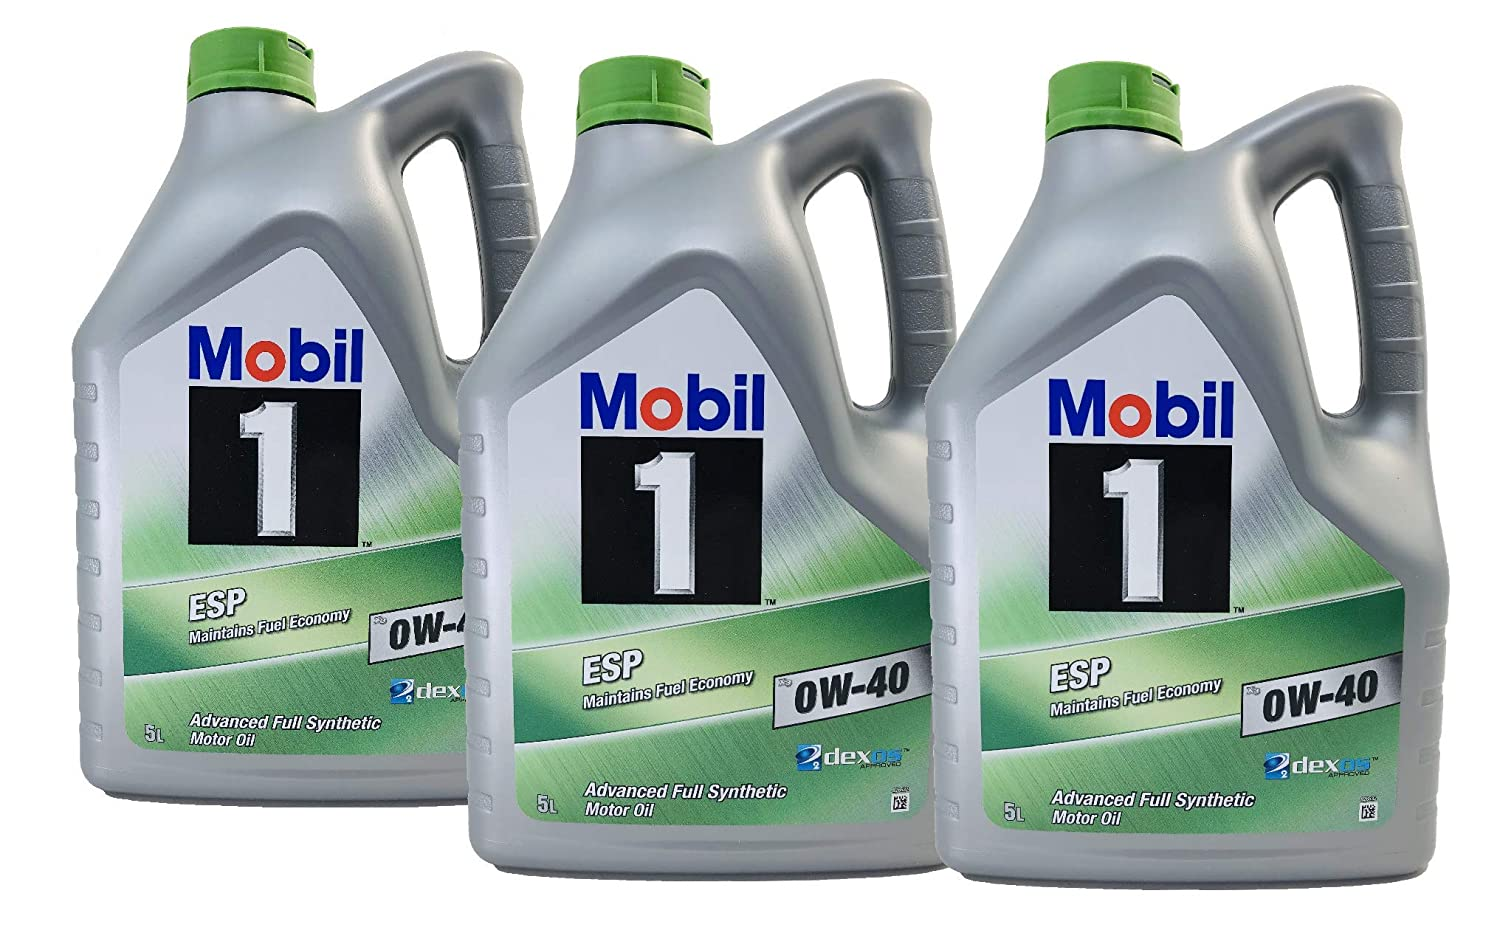 Mobil 1 Aceite Lubricante Motor ESP X3 0W-40 dexos 2, Pack 15 ...